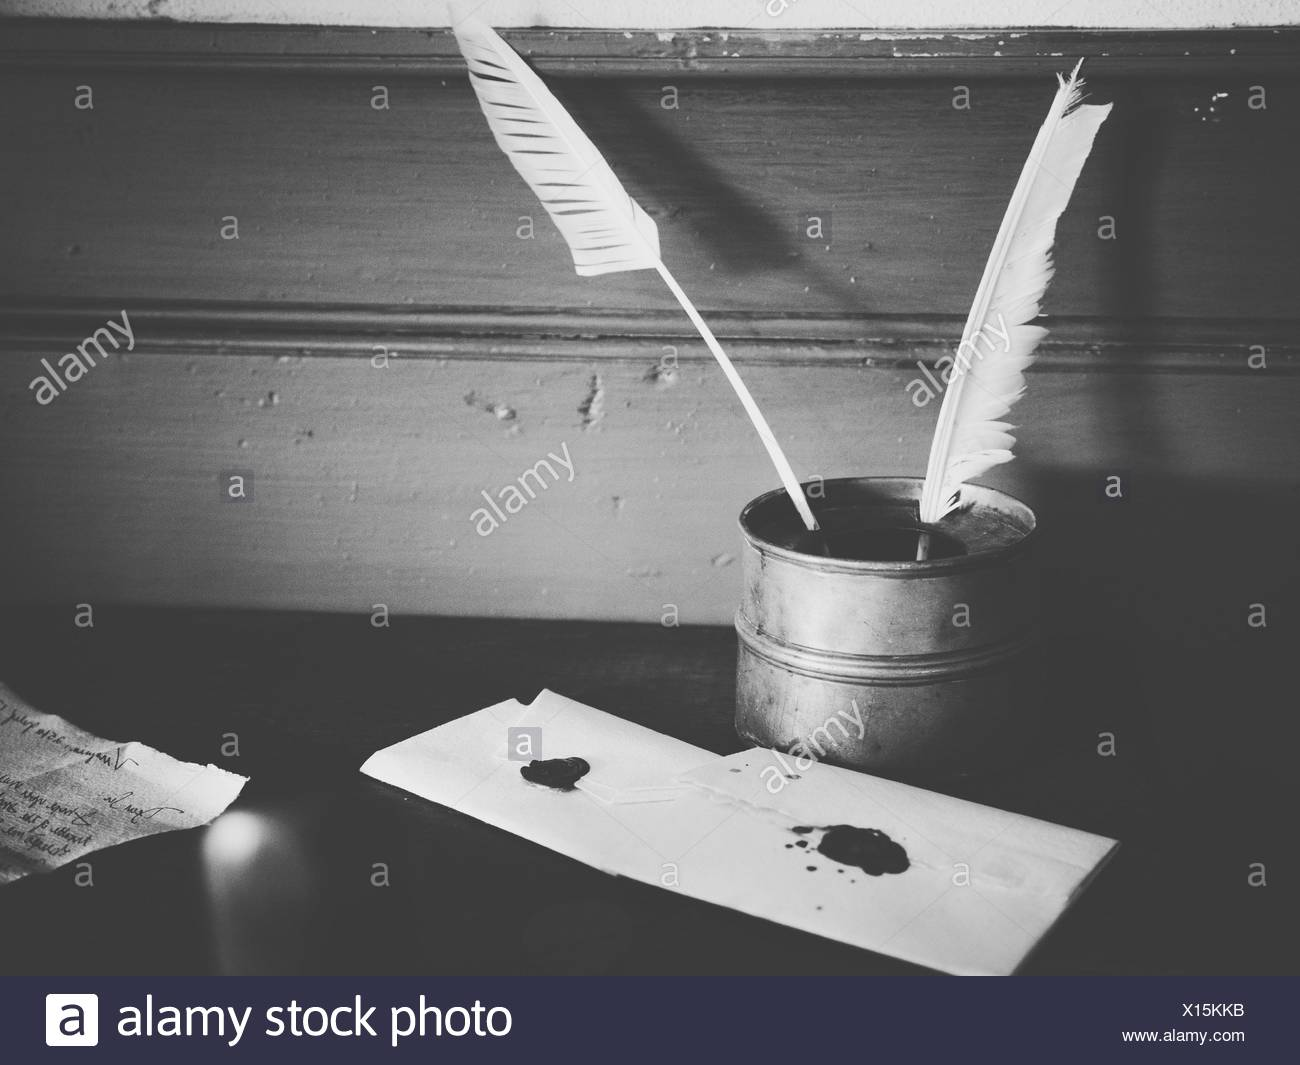 Close-Up Of Quill Pen And Ink Well - Stock Image